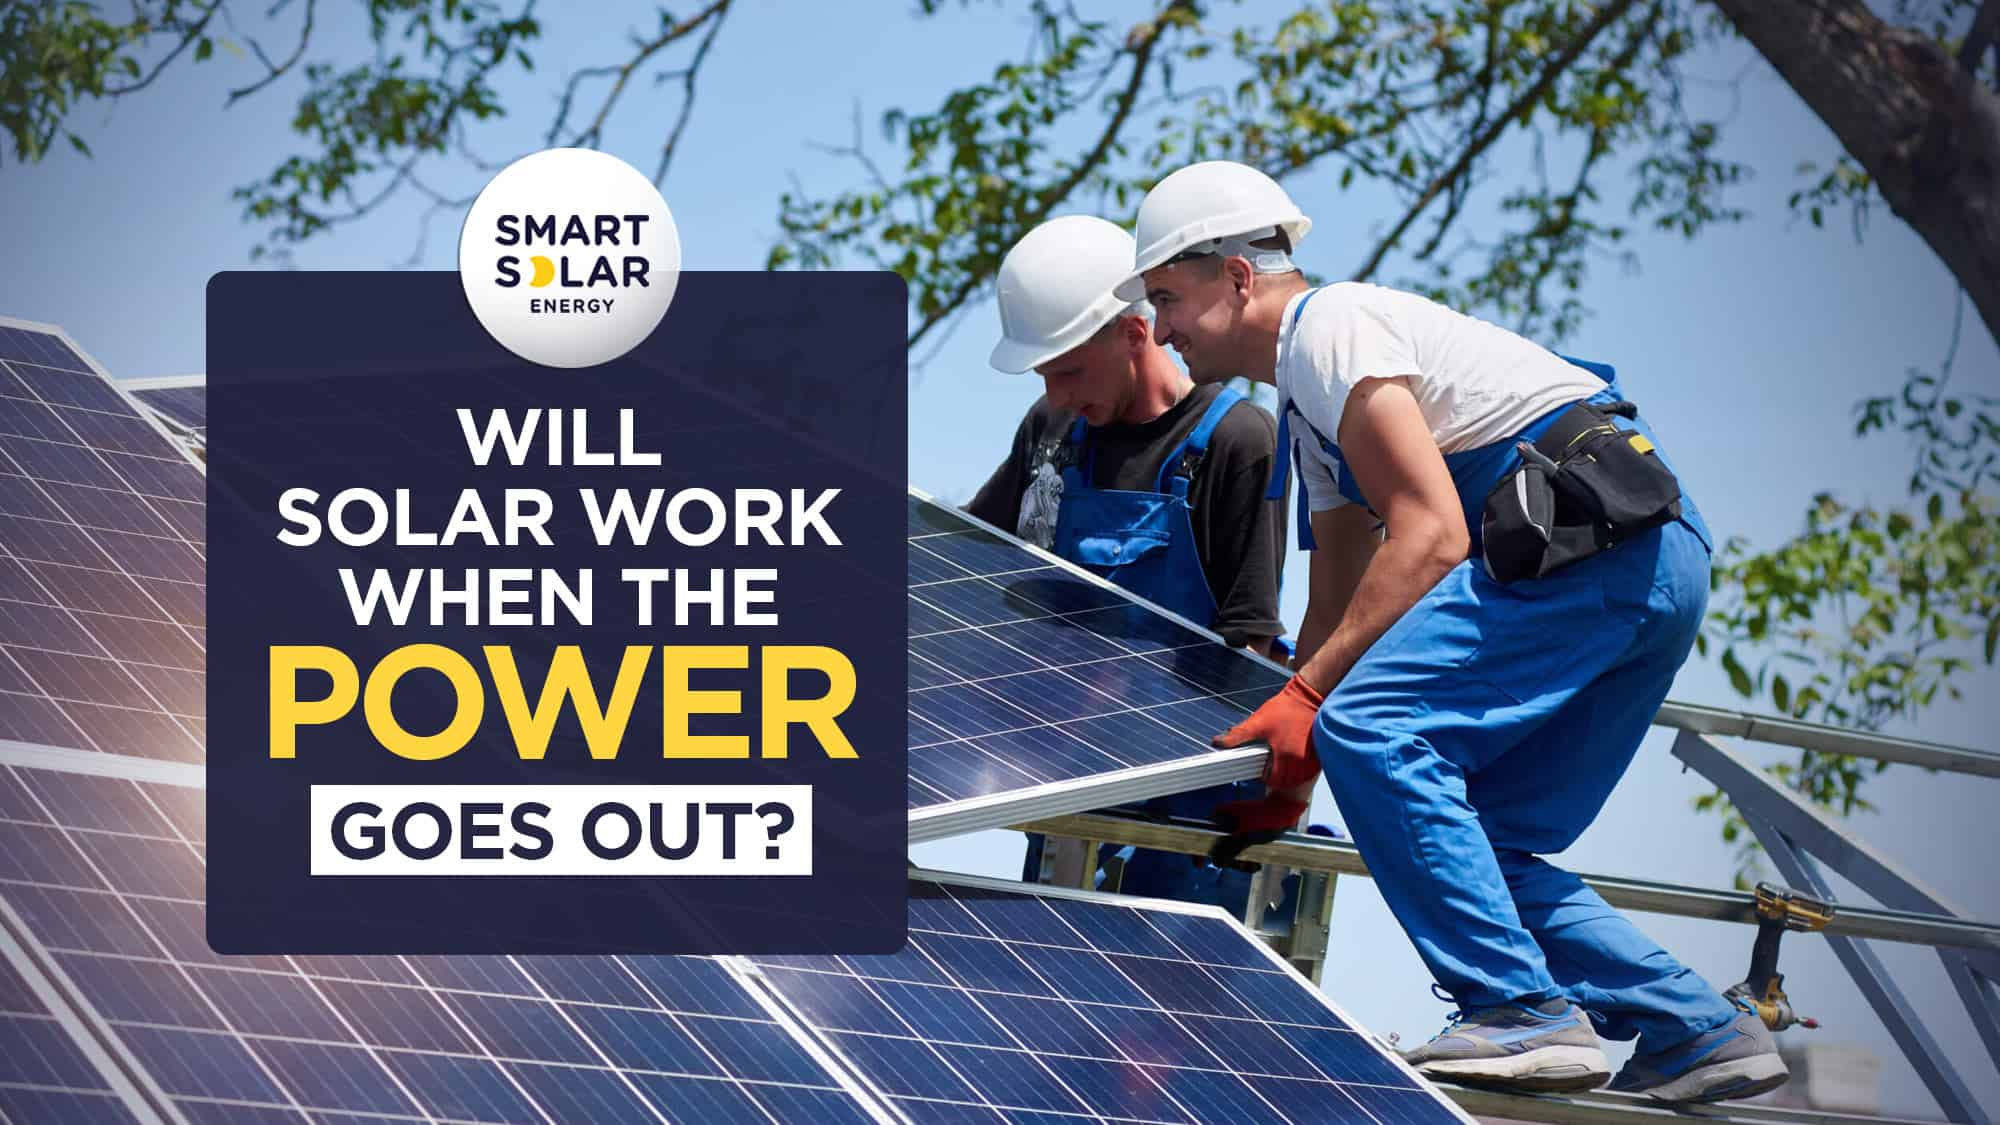 Will Solar work when the power goes out?